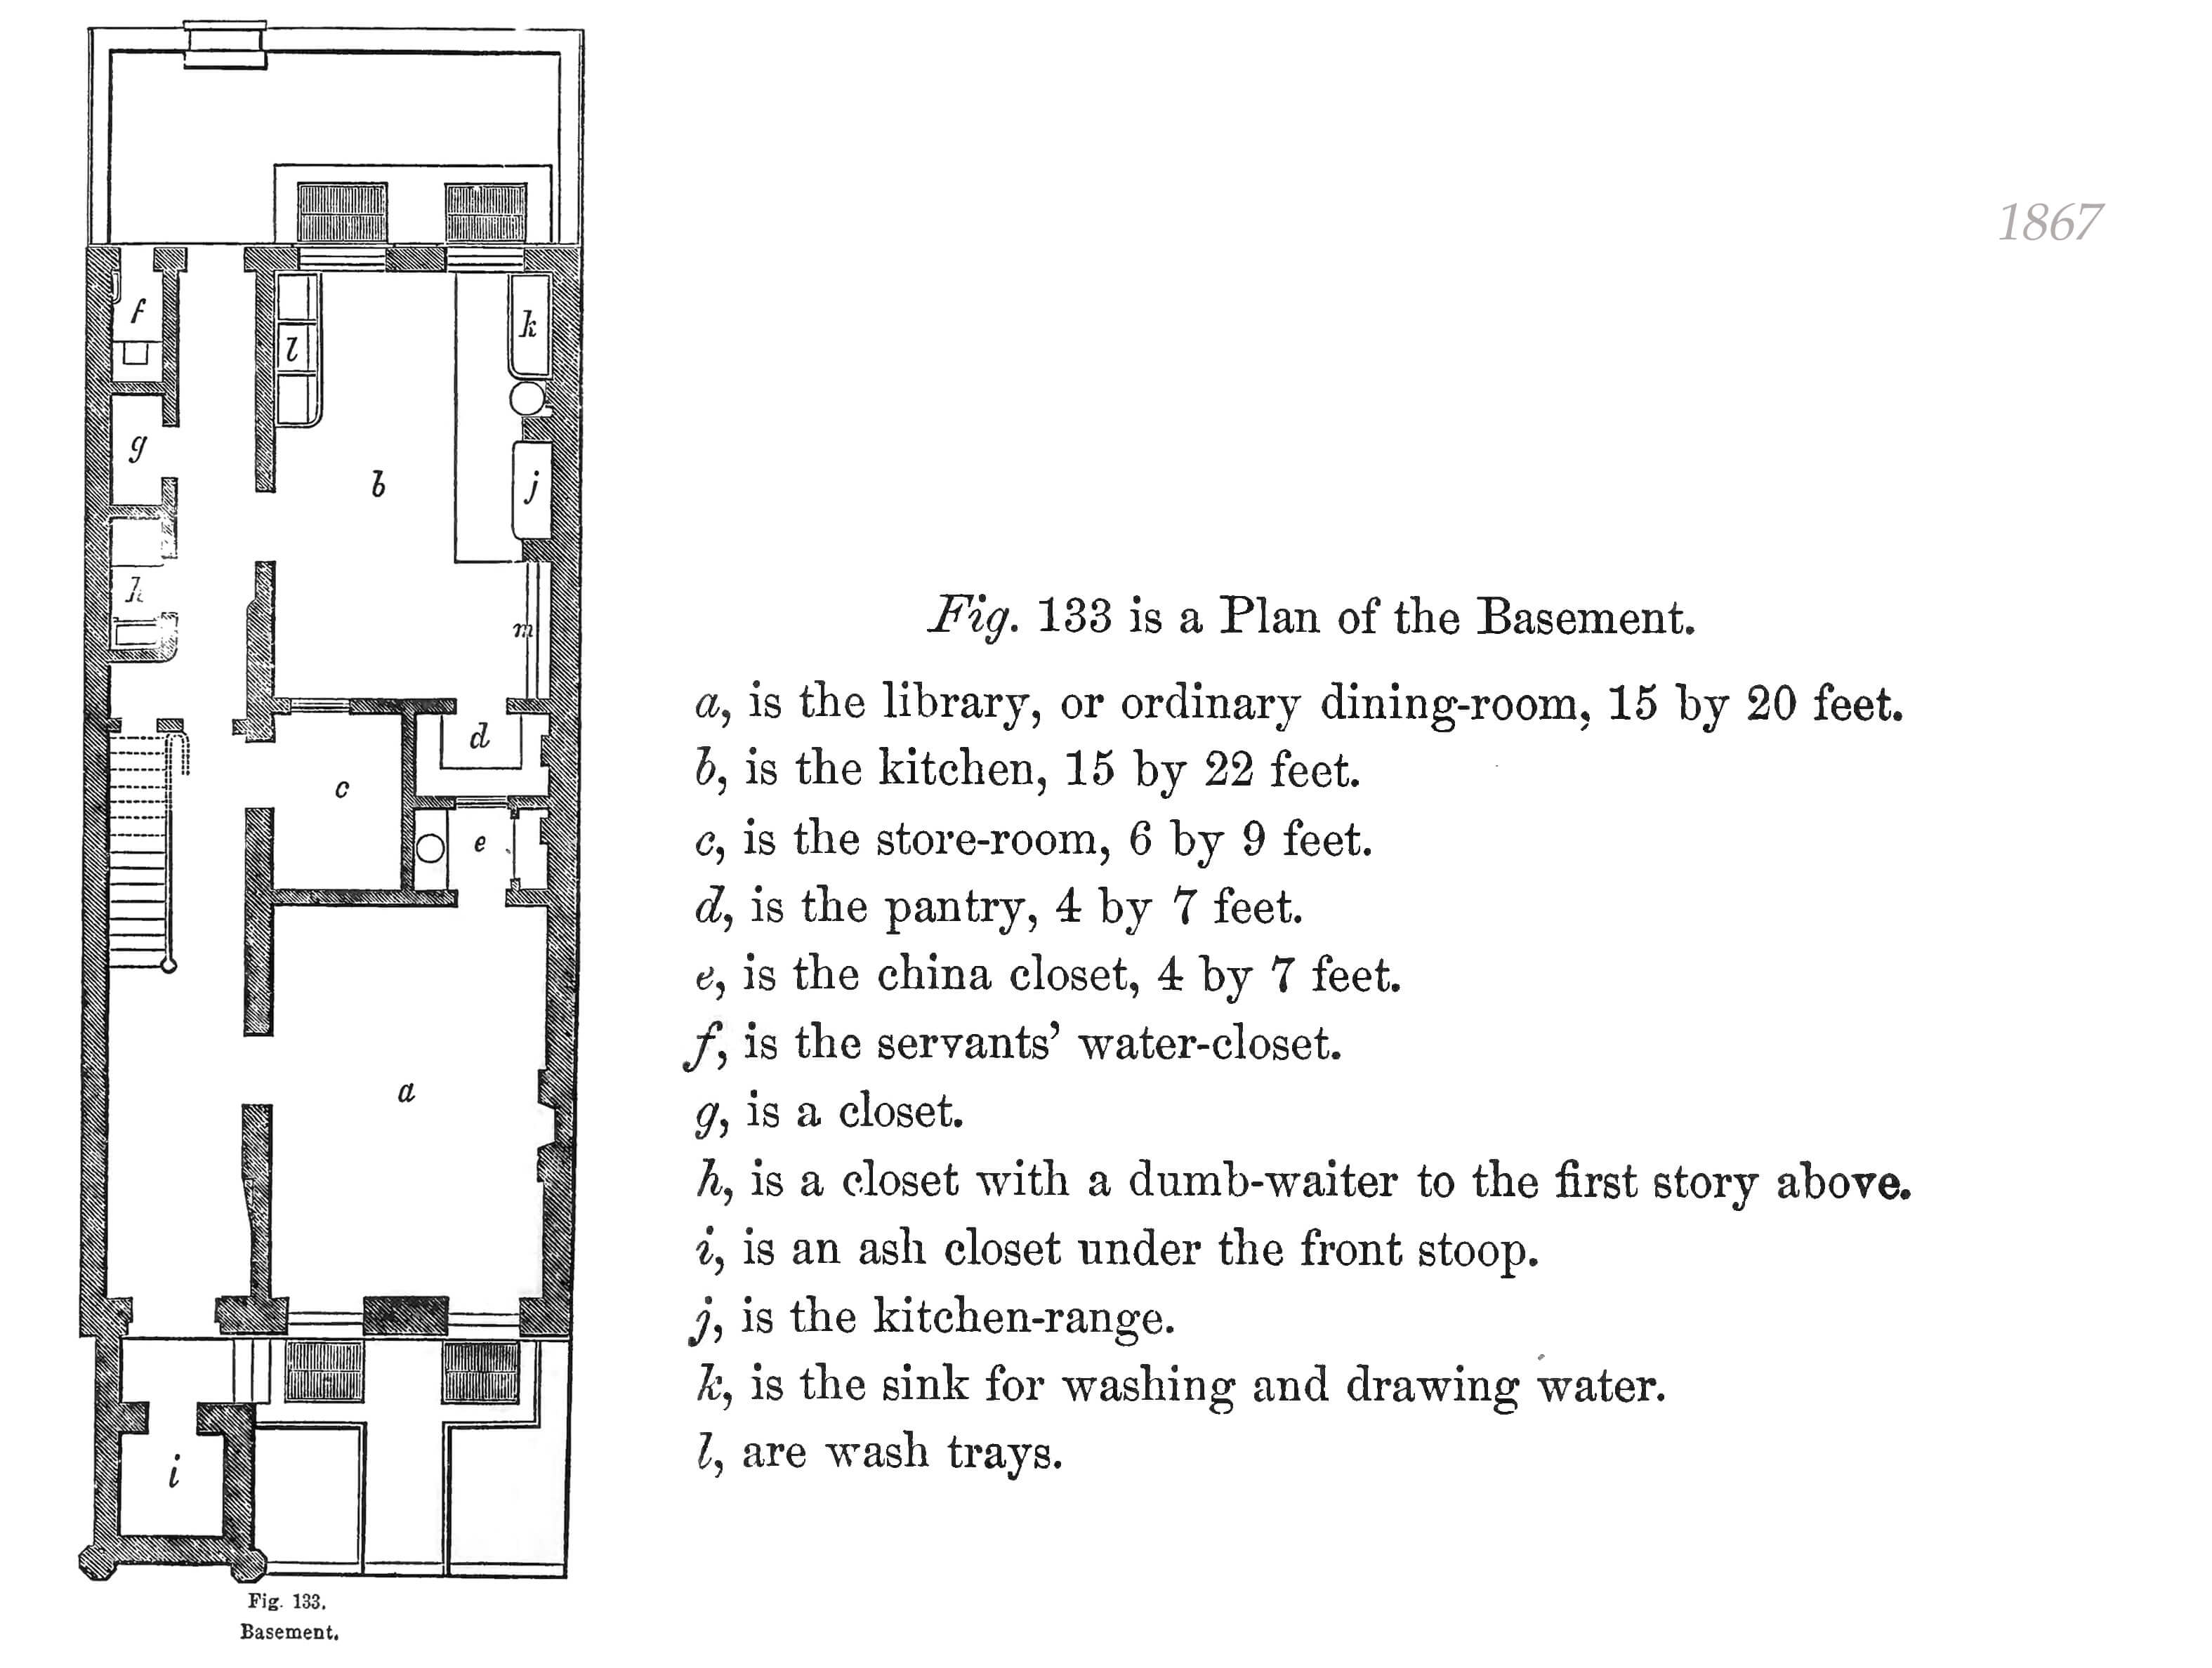 The Row House Plans Of Robert G